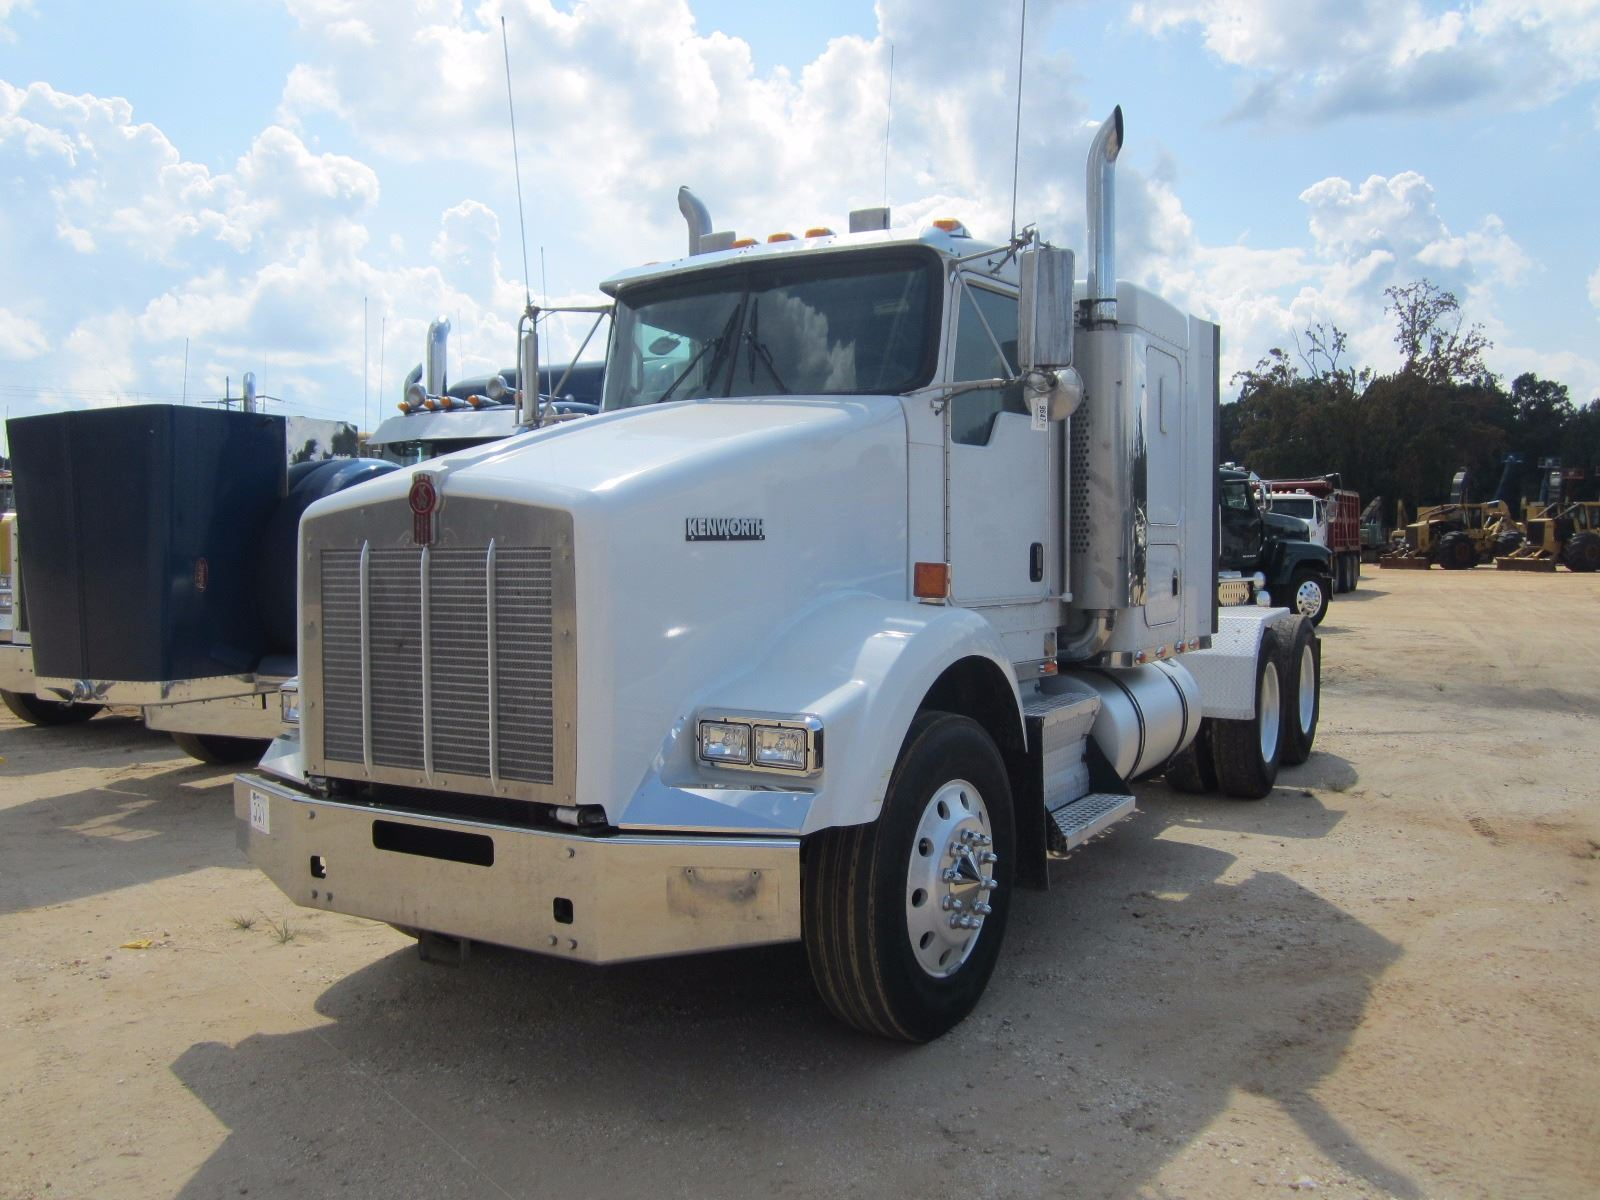 hight resolution of image 1 2006 kenworth t800 truck tractor vin sn 1xkddb9x16j54273 t